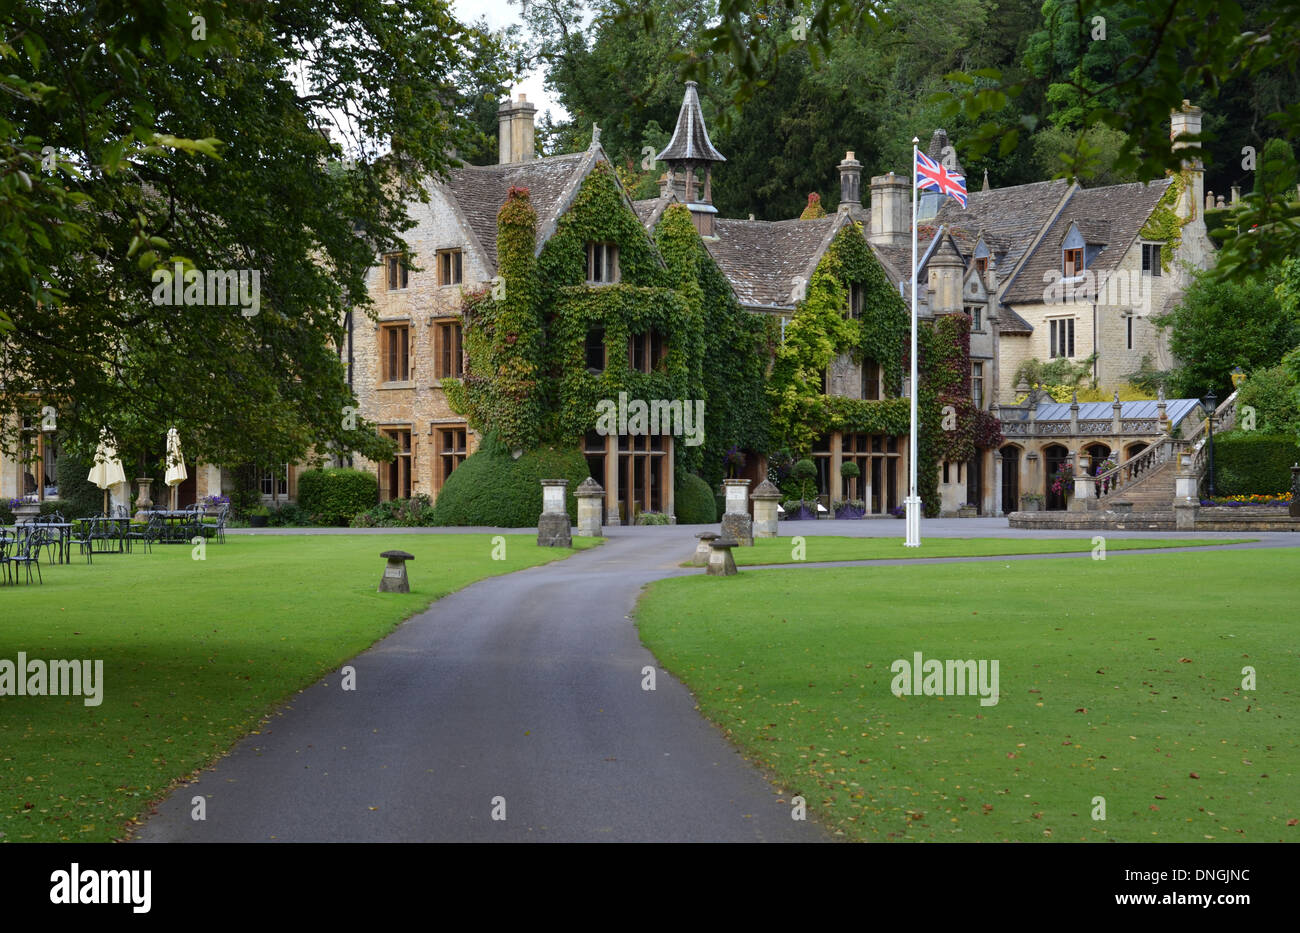 Manor House Hotel Castle Combe Wiltshire